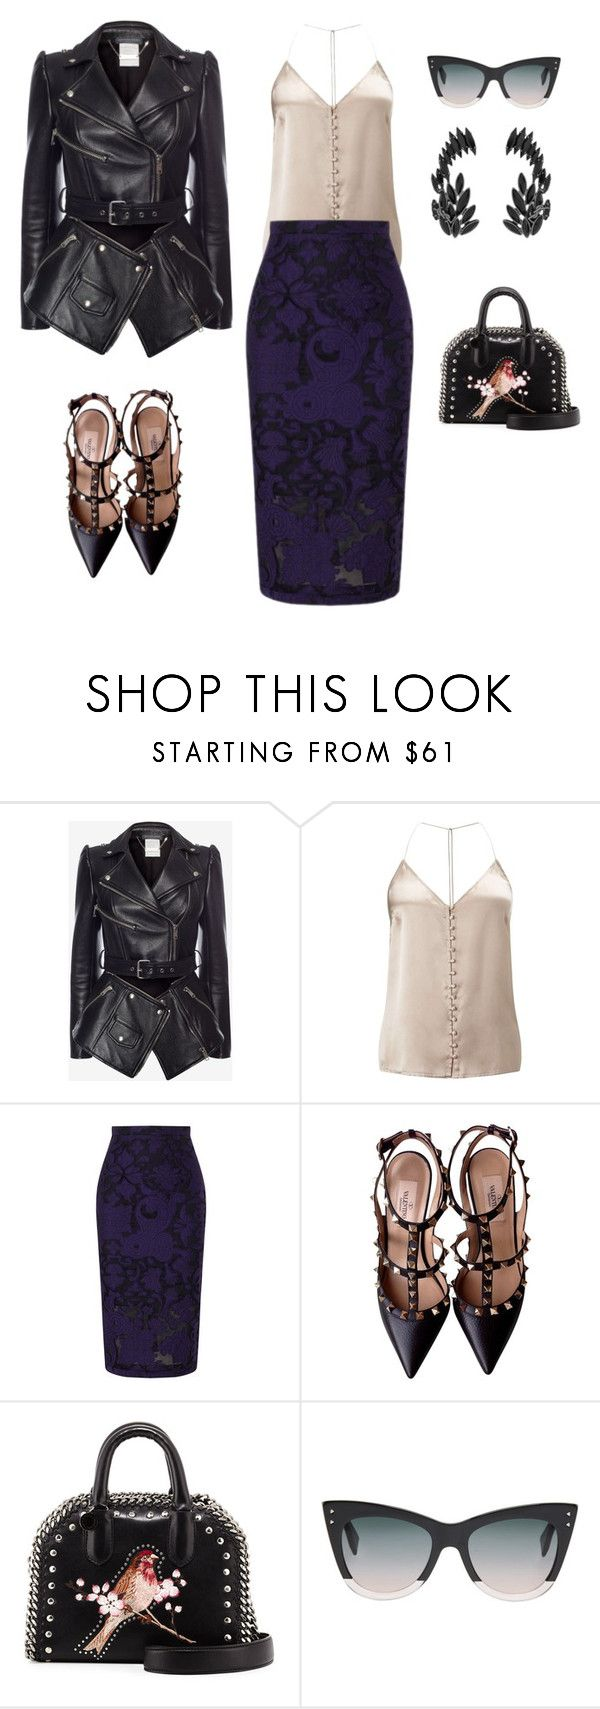 """""""Untitled #303"""" by mary-en ❤ liked on Polyvore featuring Alexander McQueen, Miss Selfridge, Roland Mouret, Valentino, STELLA McCARTNEY, Fendi, Yves Saint Laurent and cocktailin"""